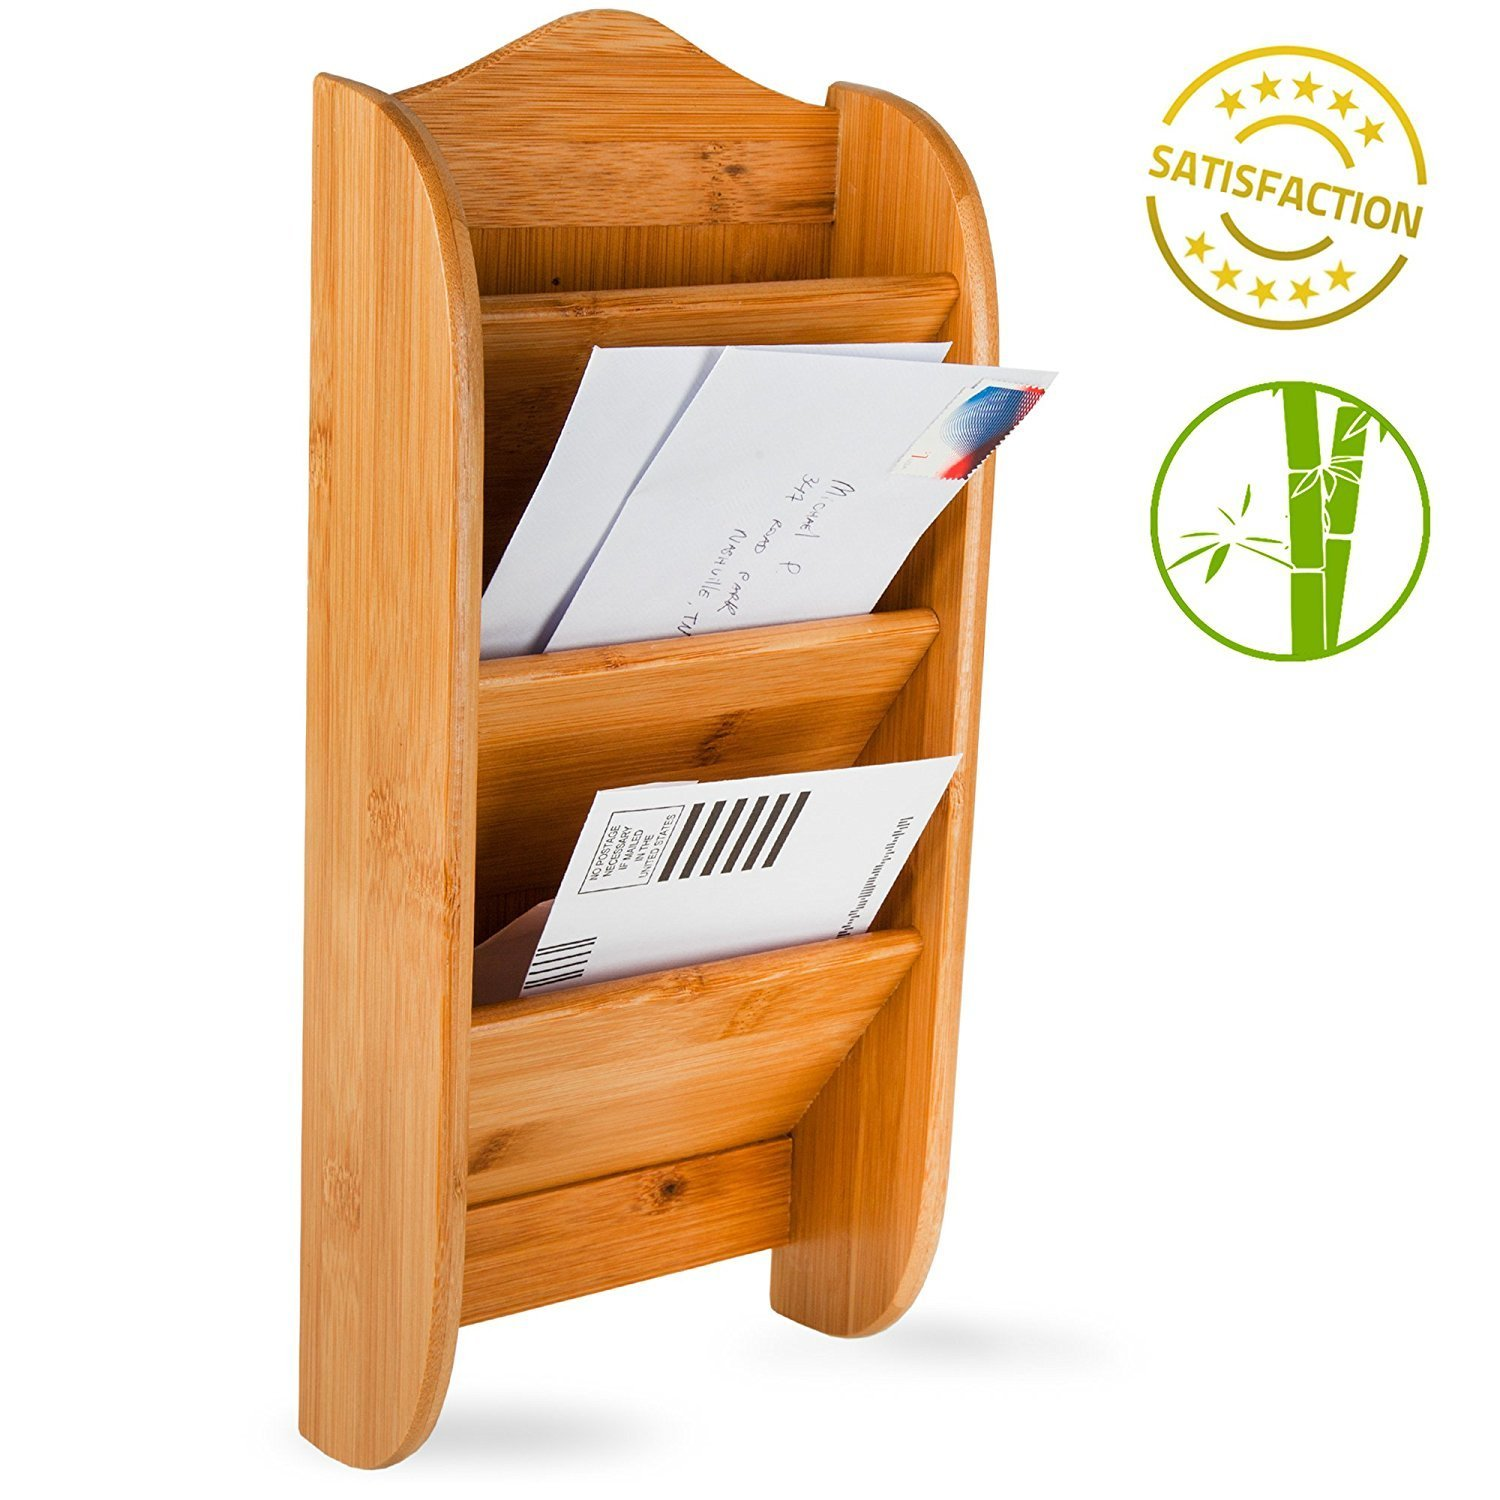 Home Intuition Wall Mount Bamboo Mail Organizer Letter Holder Rack, 3 Slot LR08412